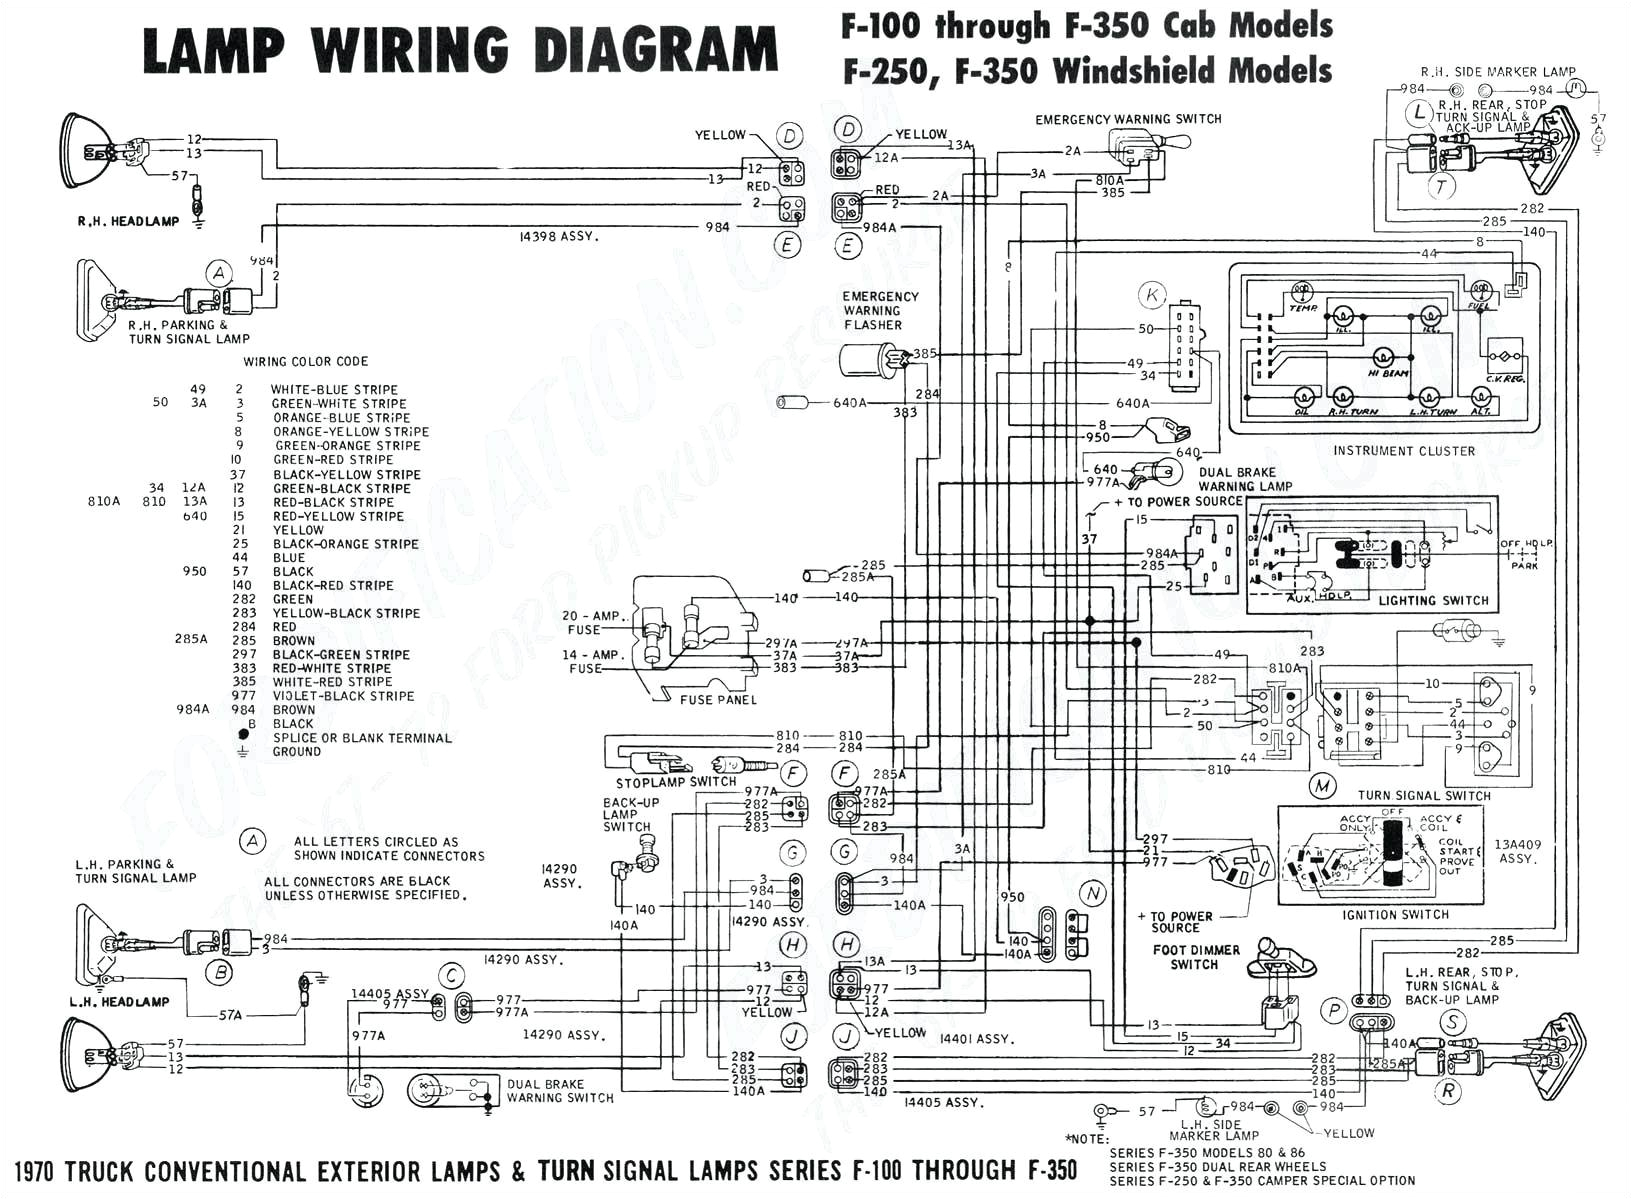 electrical switch wiring diagram free download premium wiring low voltage switch wiring diagram free download